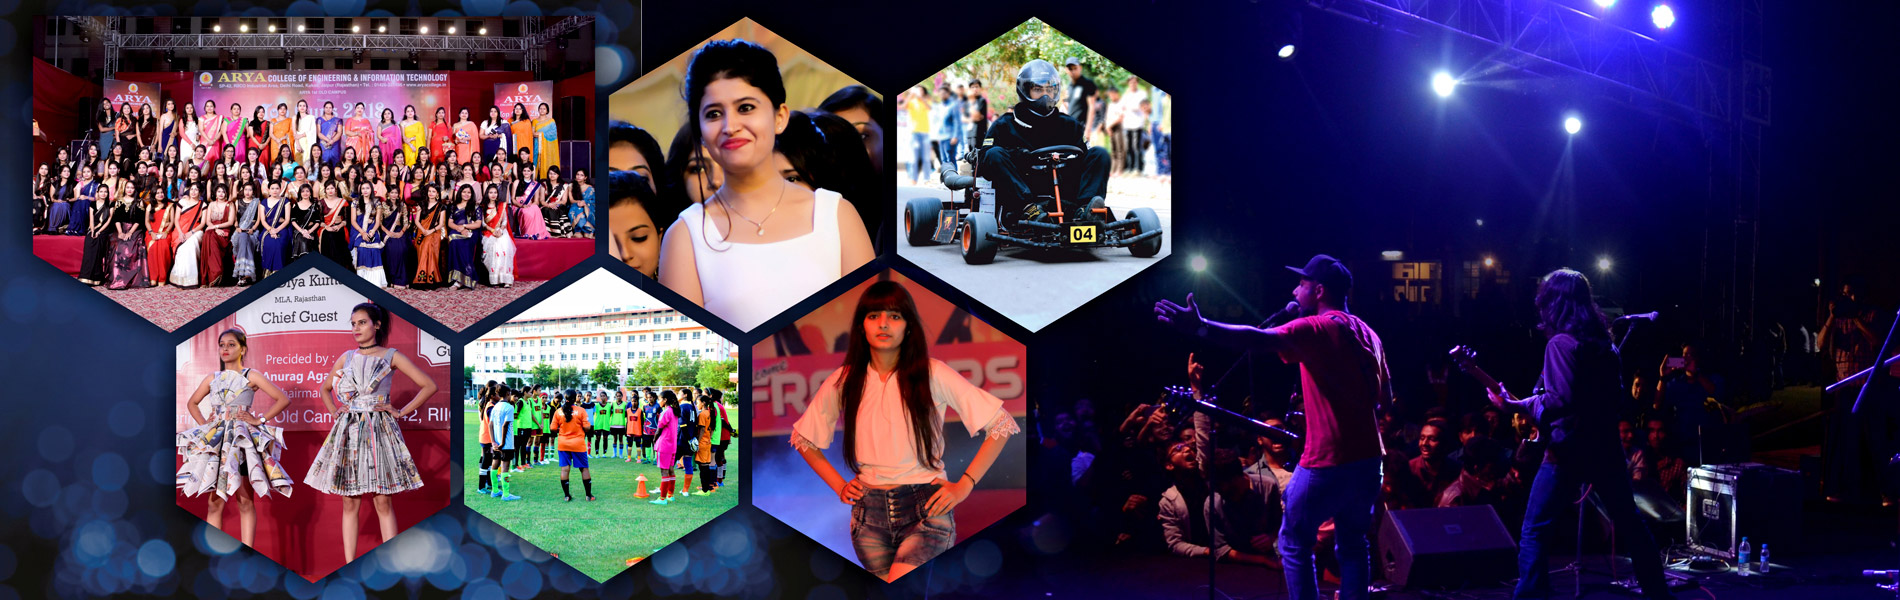 Event Gallery of Arya College Rajasthan